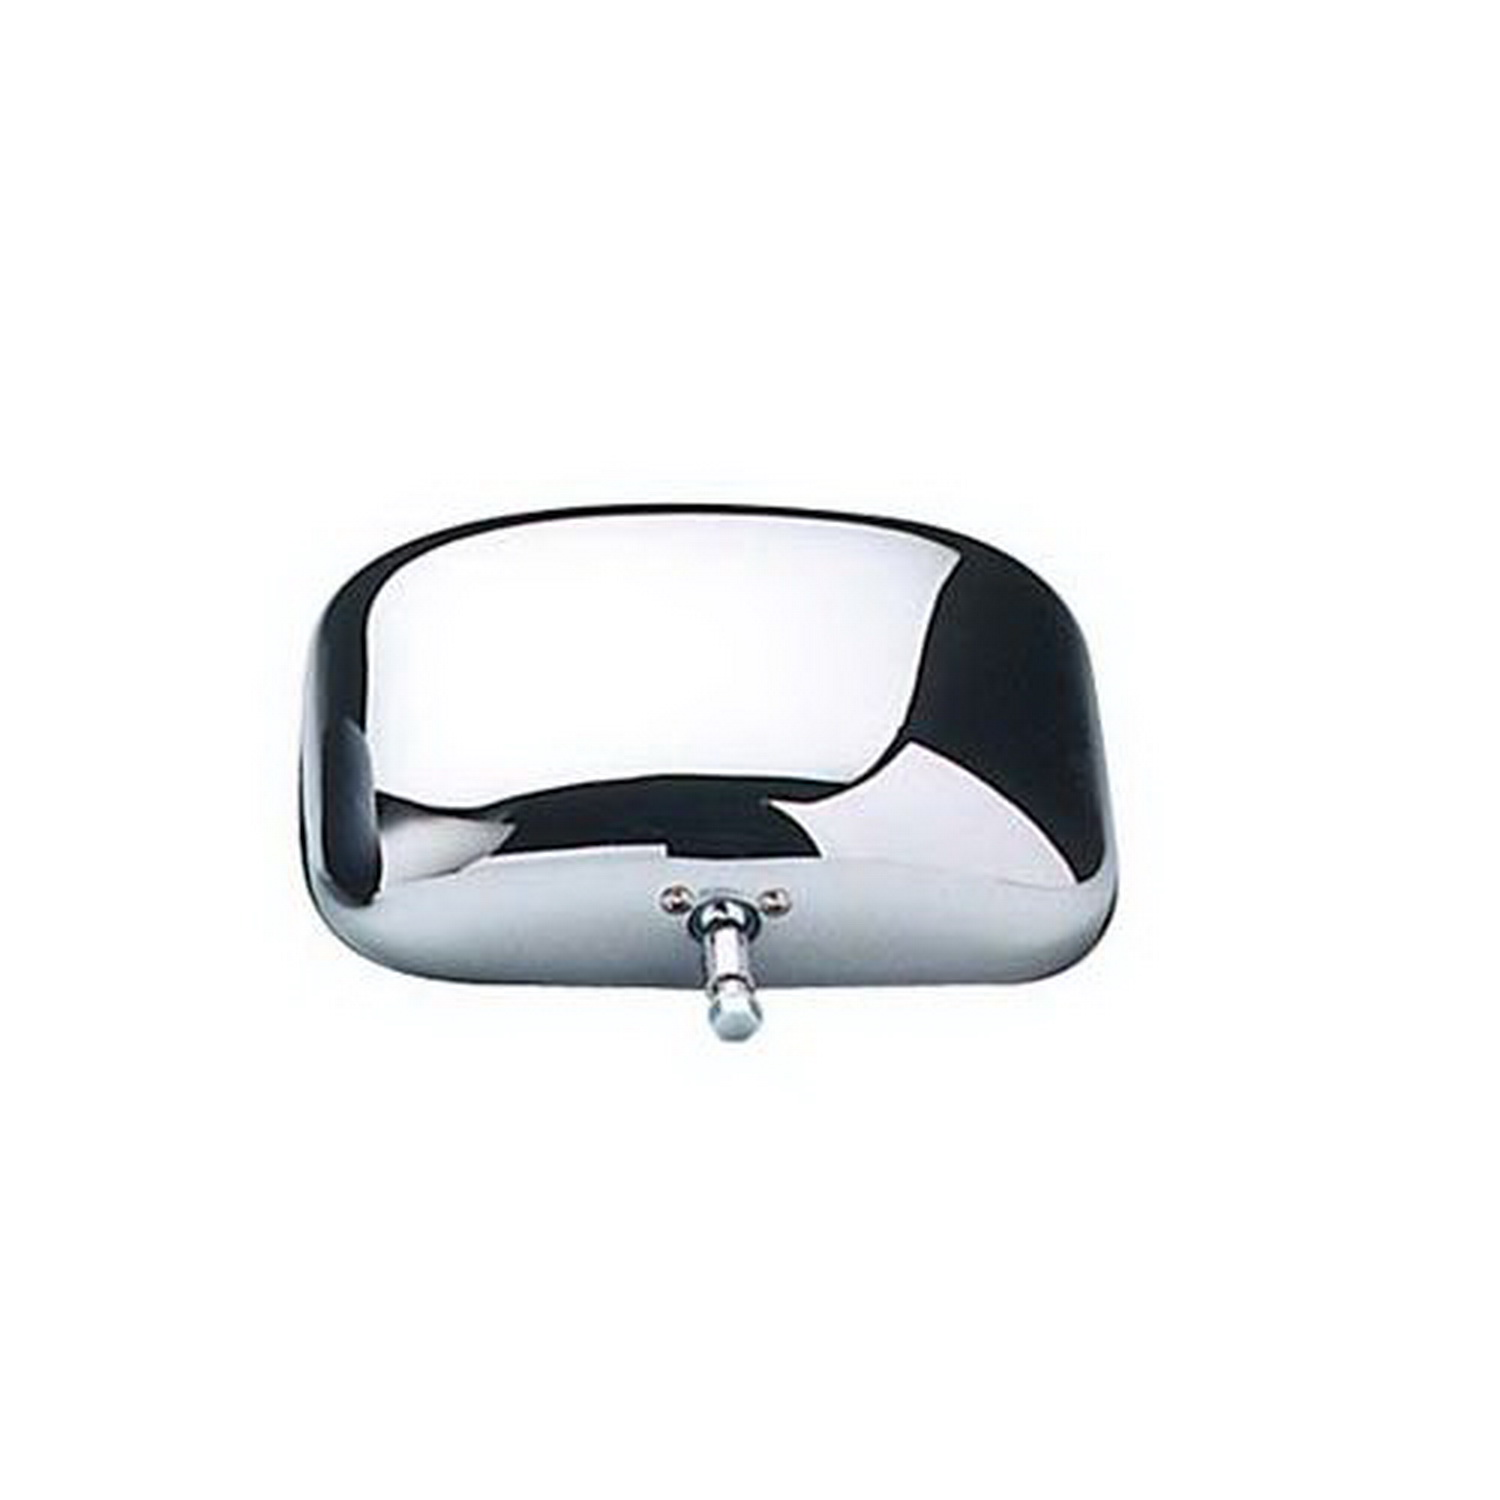 Cipa USA Door Mirror (95500)